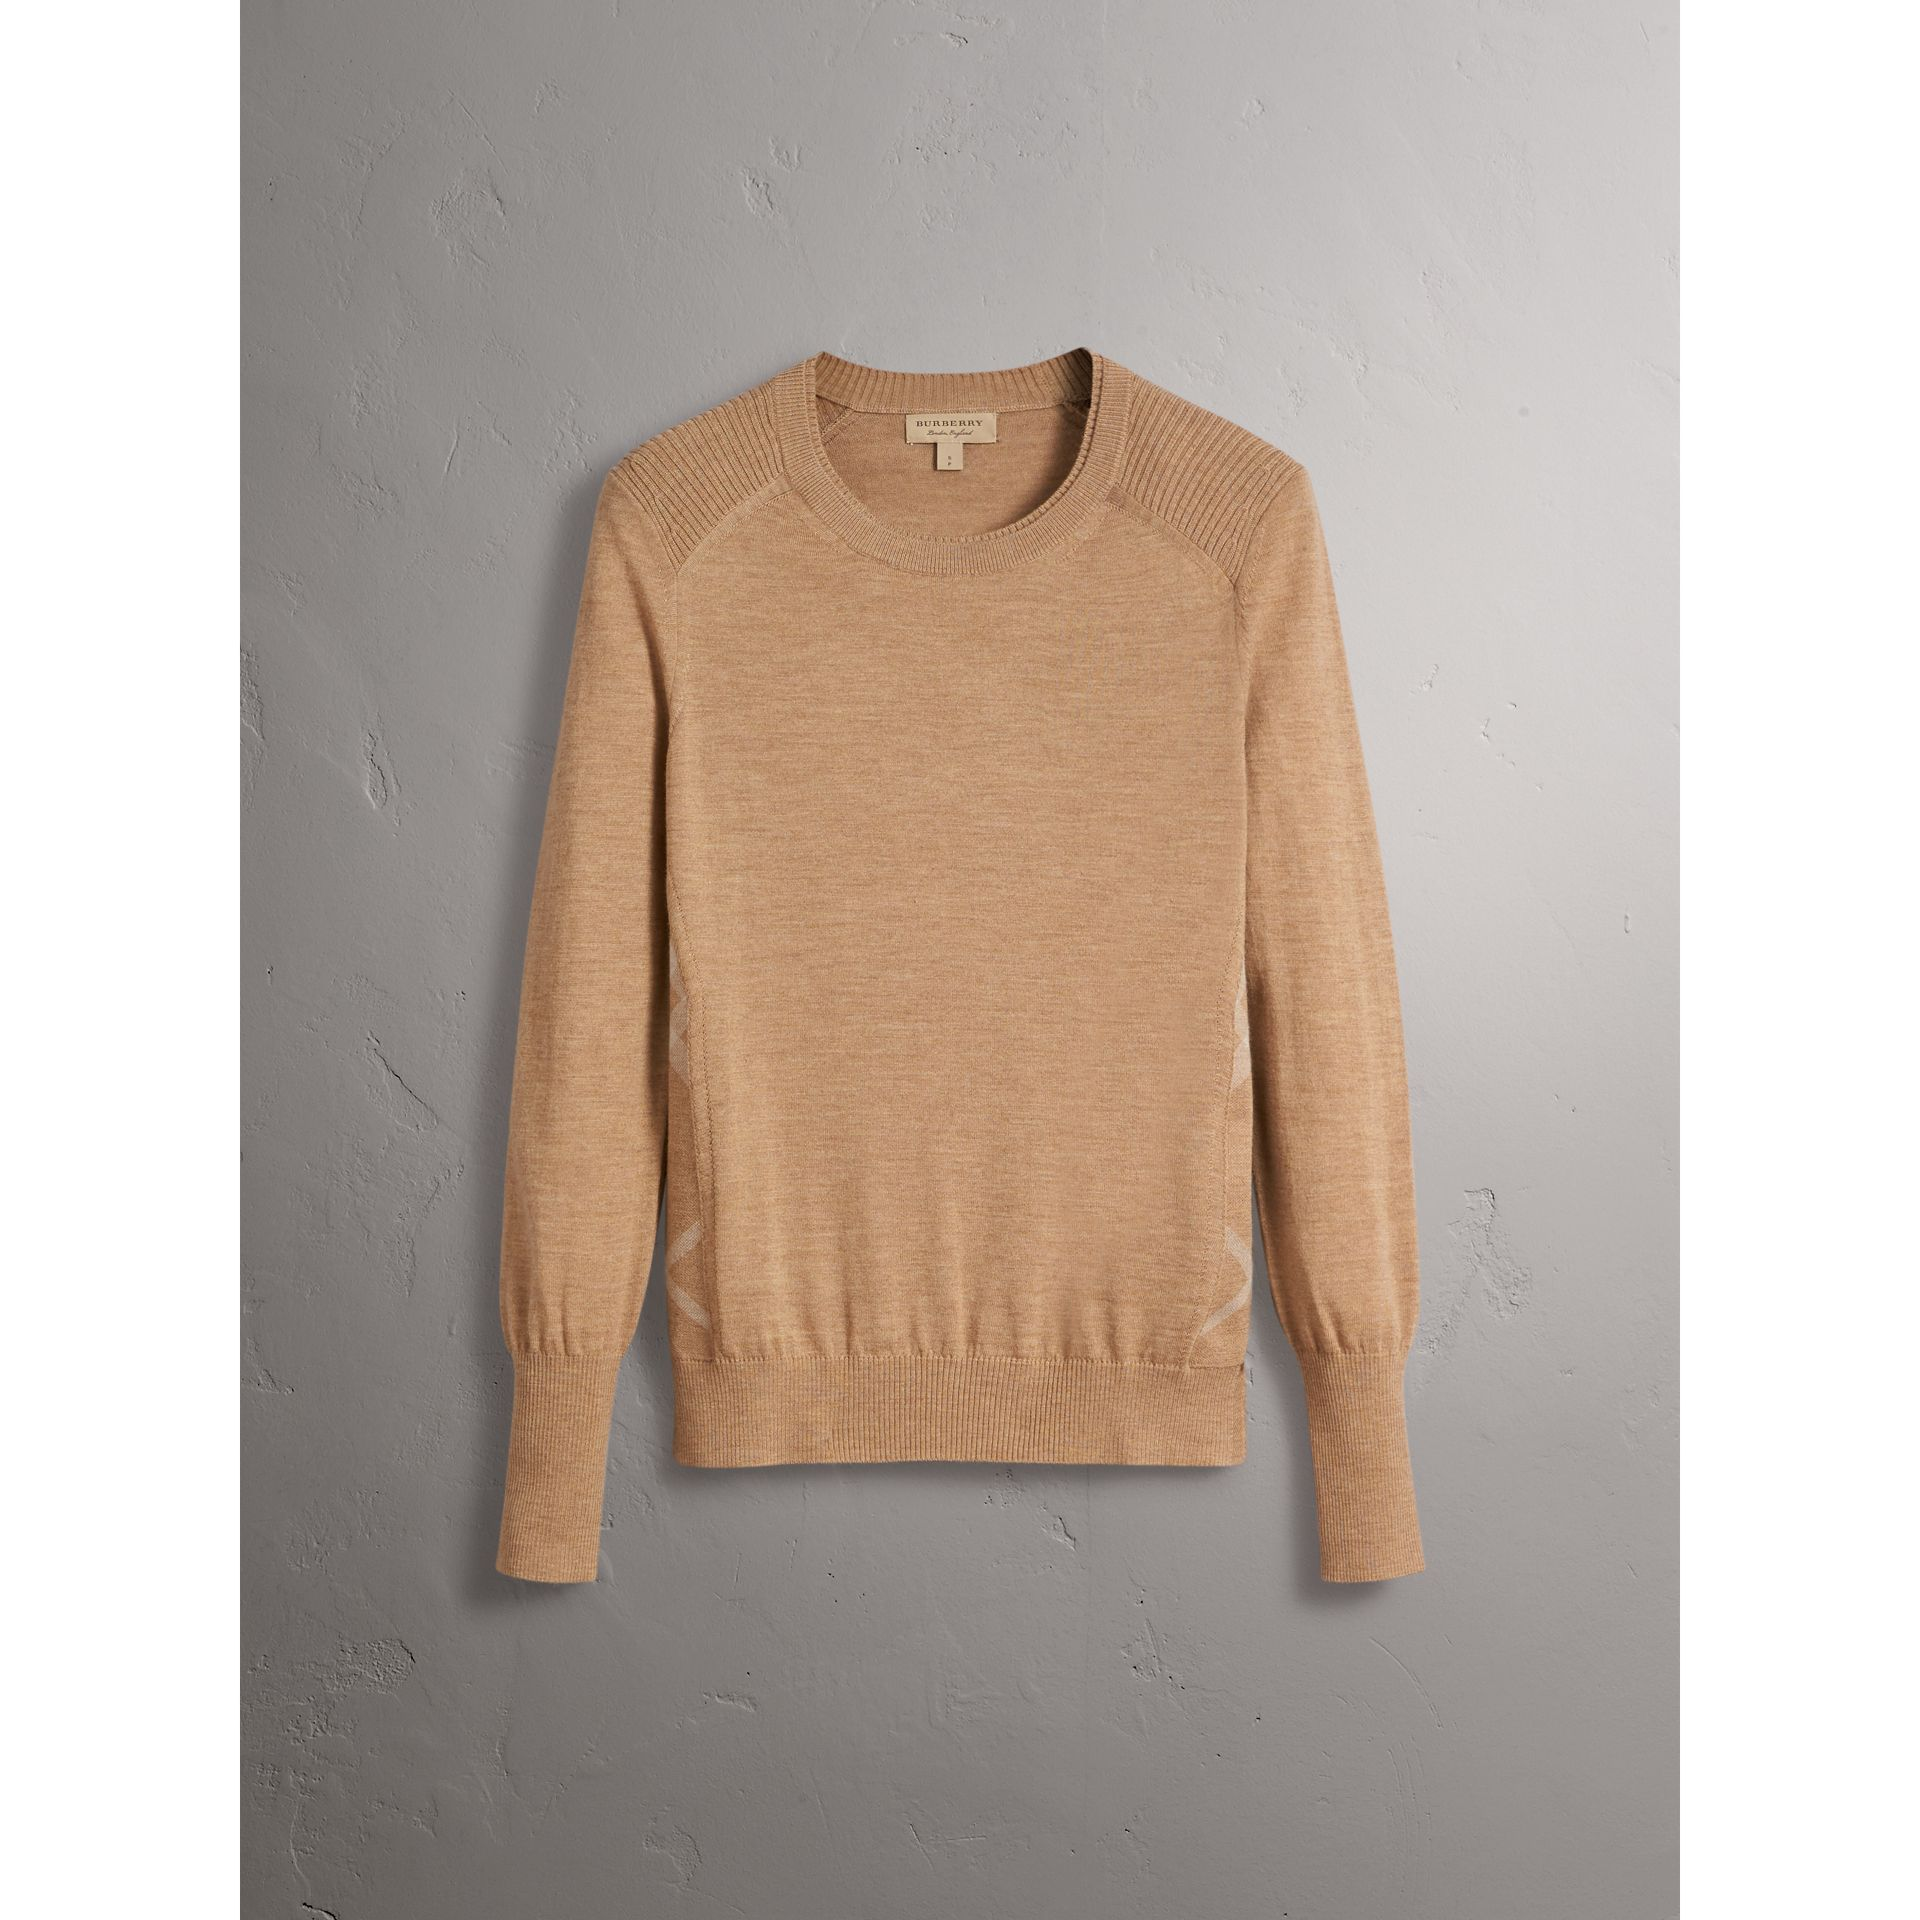 Check Detail Merino Wool Sweater in Camel - Women | Burberry United Kingdom - gallery image 3